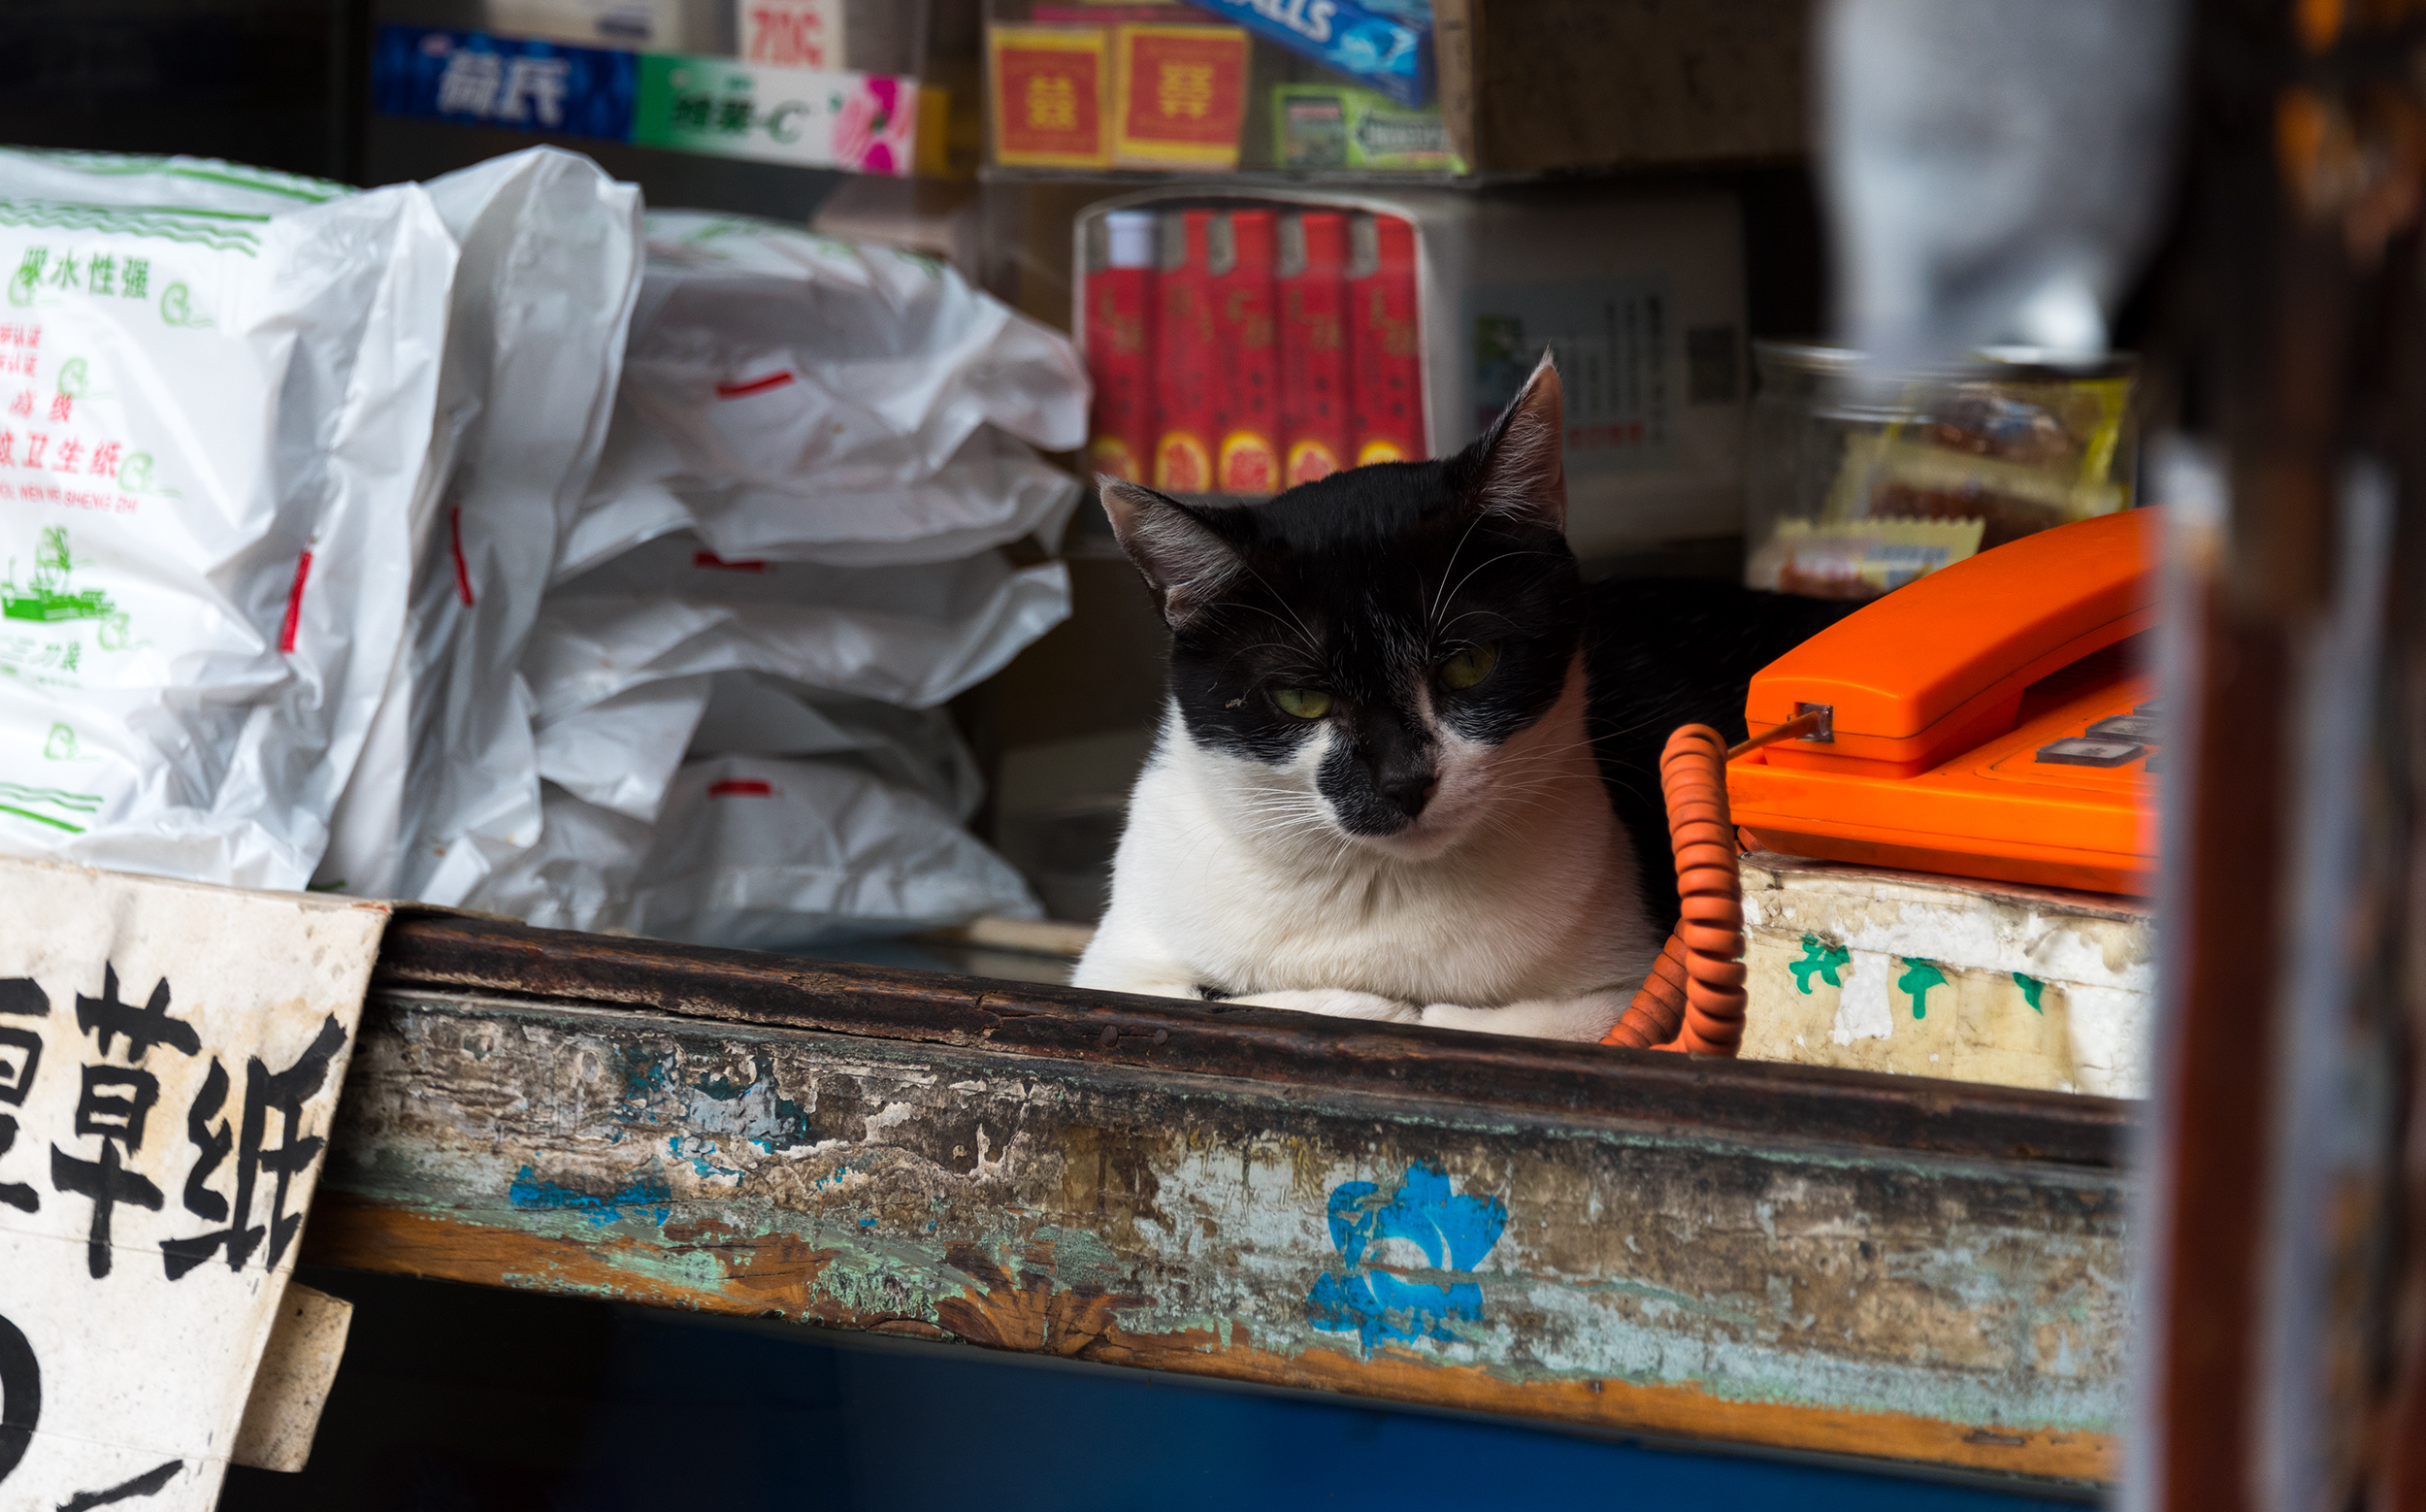 China, Shanghai: Cat